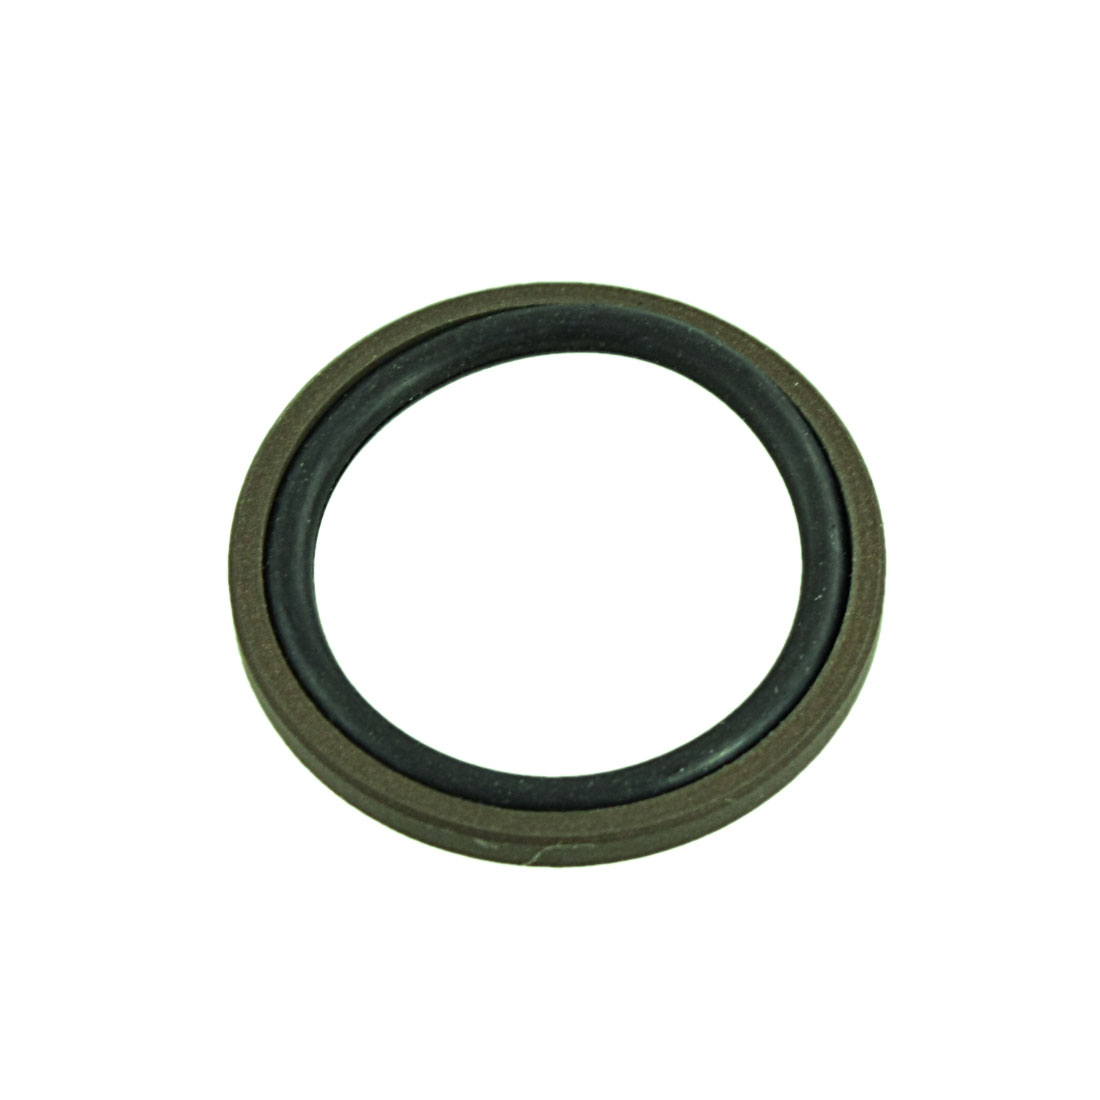 35mm x 27mm x 3mm NBR PTFE Glyd Ring Piston Seal